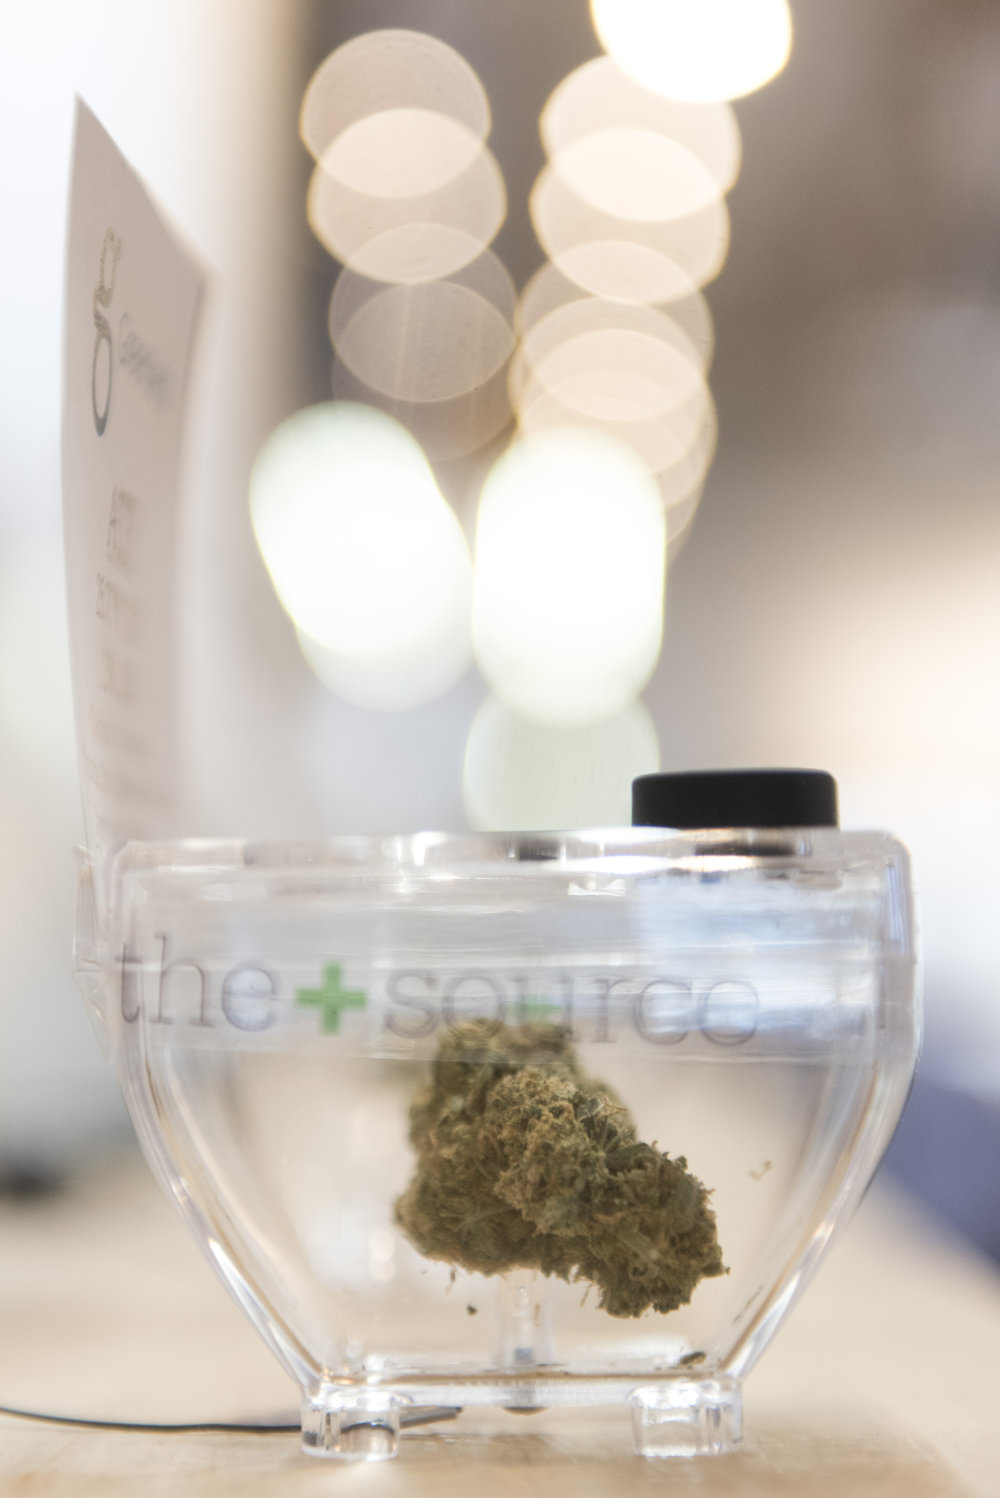 In Las Vegas, Nev. on July 1, 2017, a sample of marijuana is displayed at The Source marijuana dispensary during the first day of the state's recreational marijuana sales. State residents and visitors over the age of 21 are able to purchase up to one ounce of marijuana flower and 1/8 ounce of concentrate.